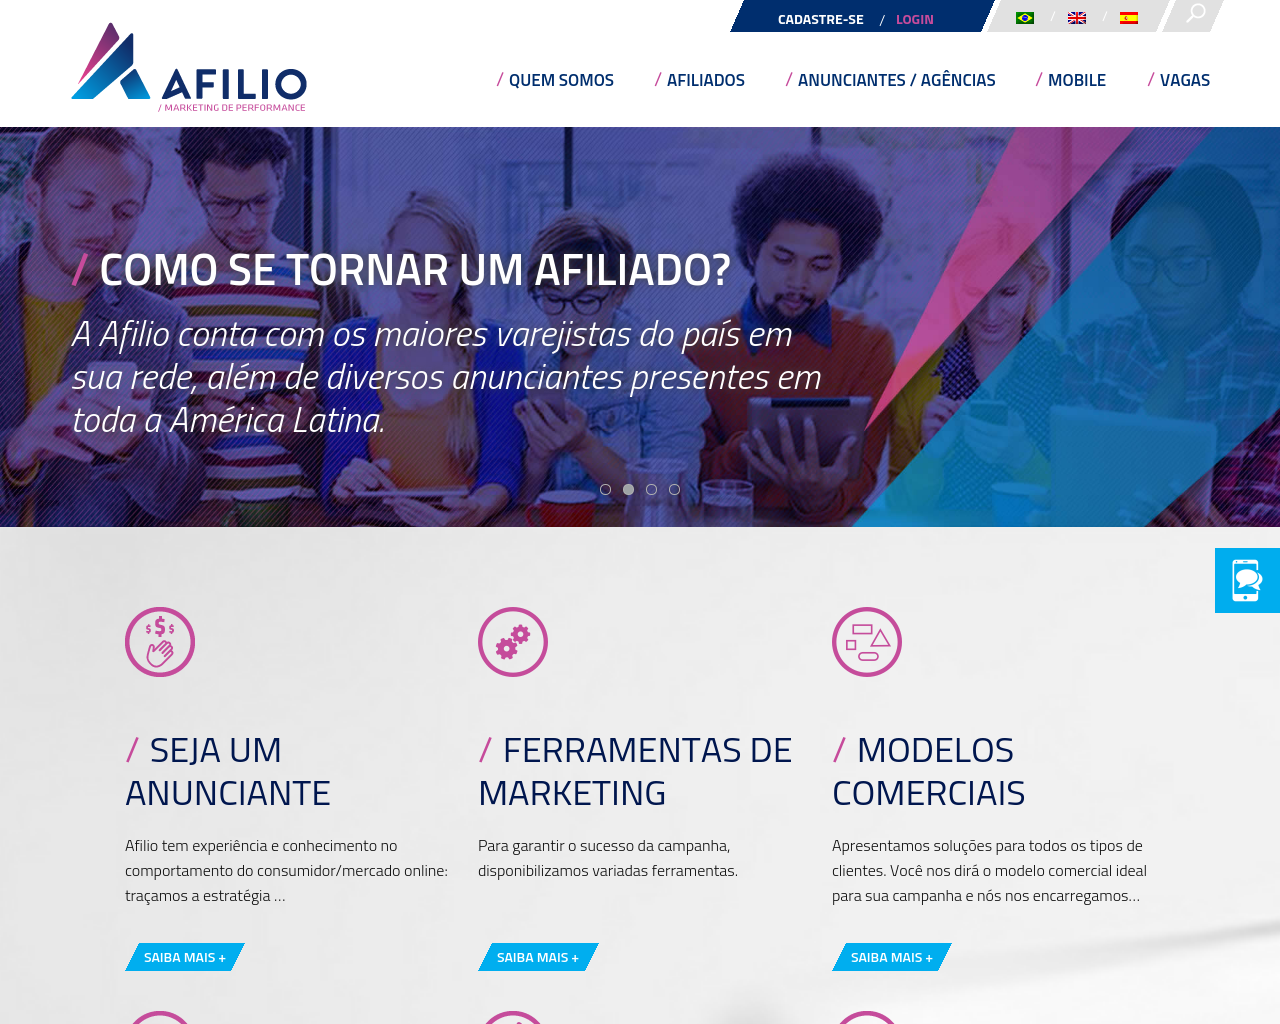 Afilio-Advertising-Reviews-Pricing